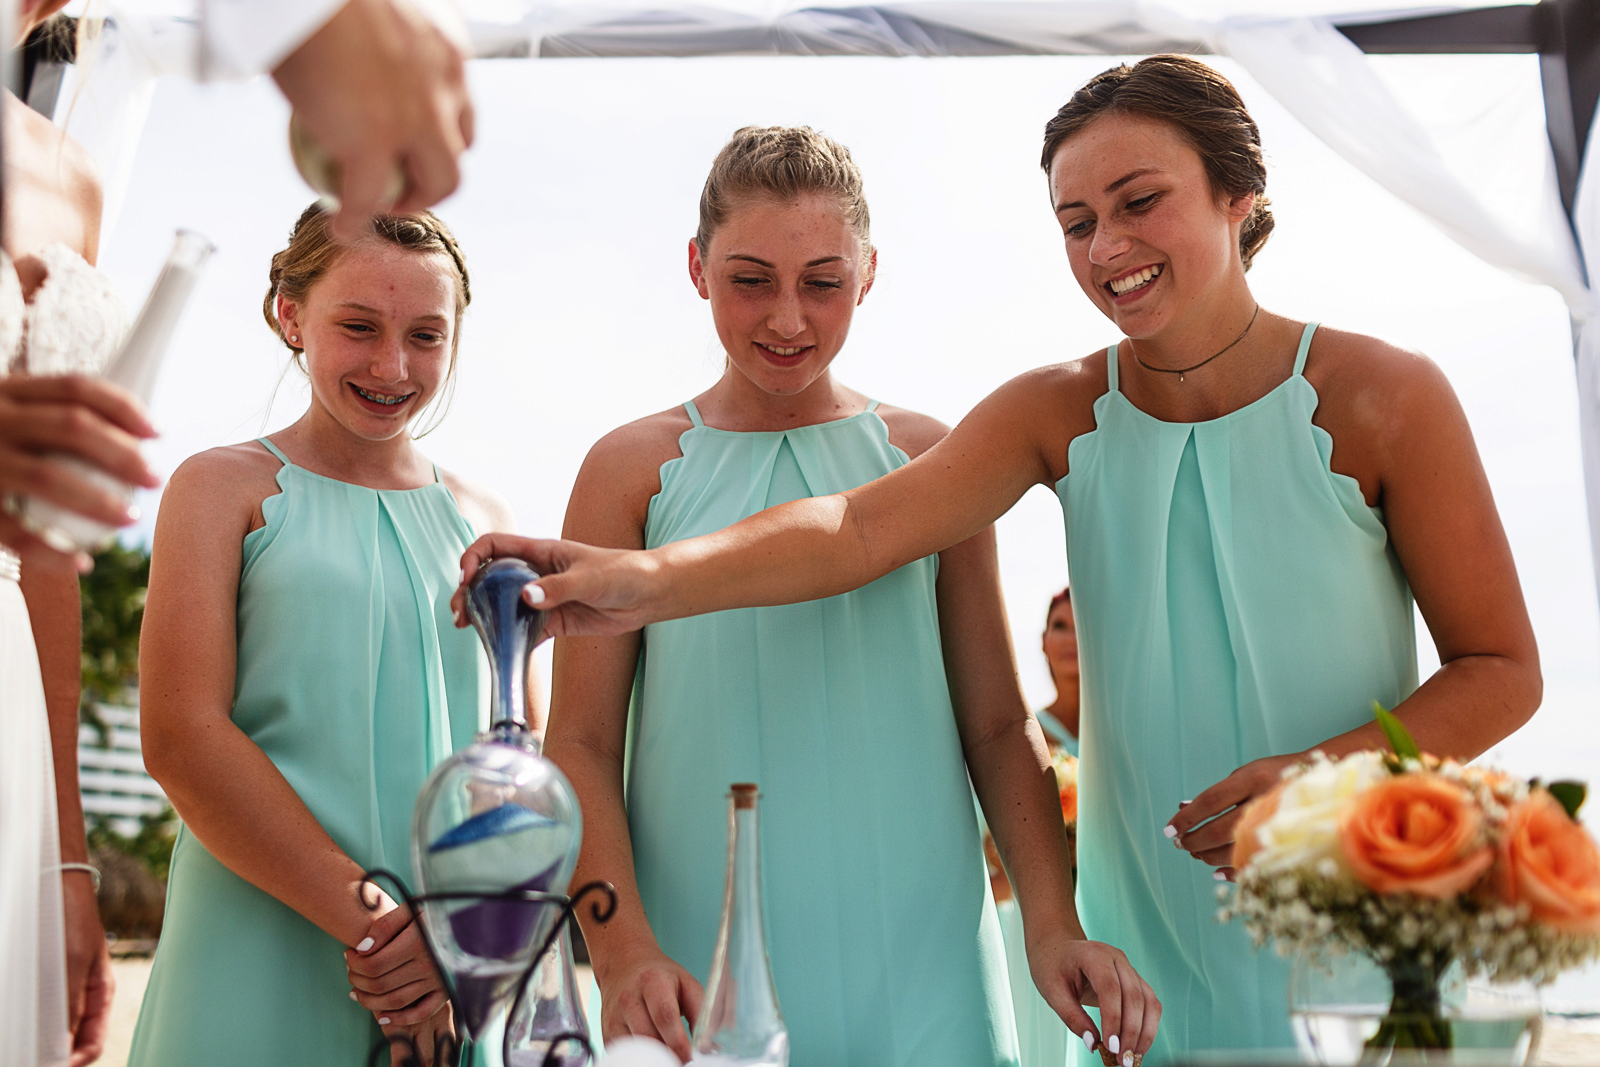 Daughters of the groom and bride filling the container during the sand ceremony on the beach of Mexico